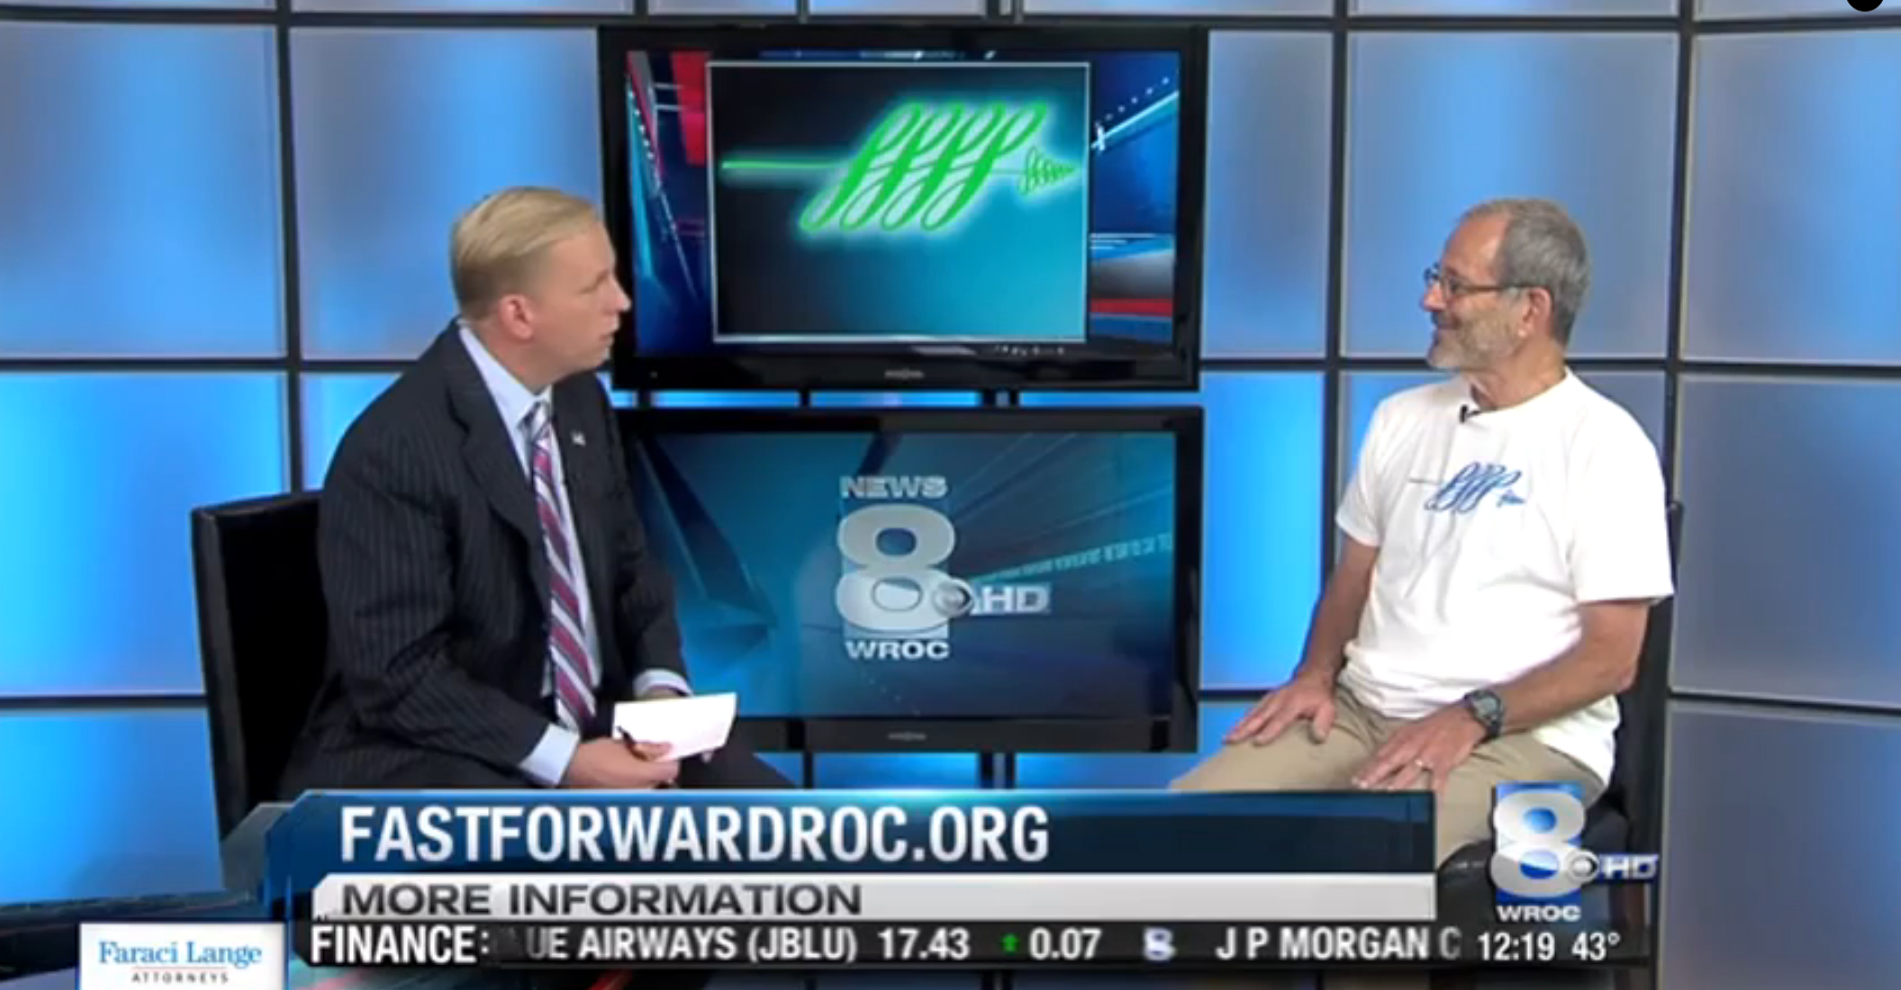 Andy Stern Talks Submission Process with Mark Gruba,  News 8